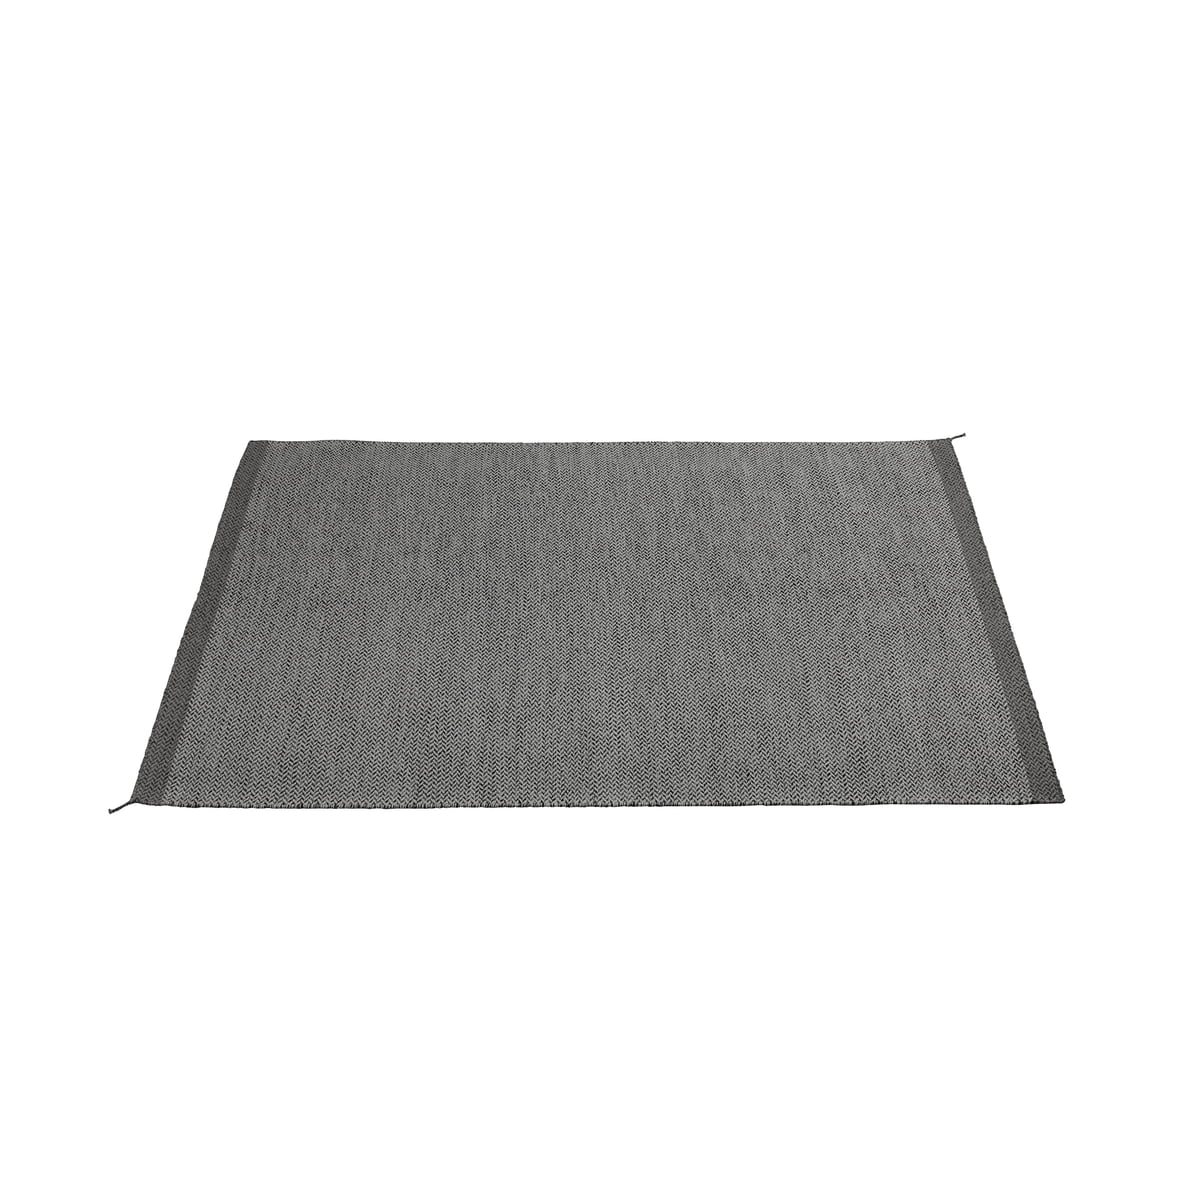 ply cm dark in home shop by grey the our dunkelgrau x rug muuto black textiles categories rugs